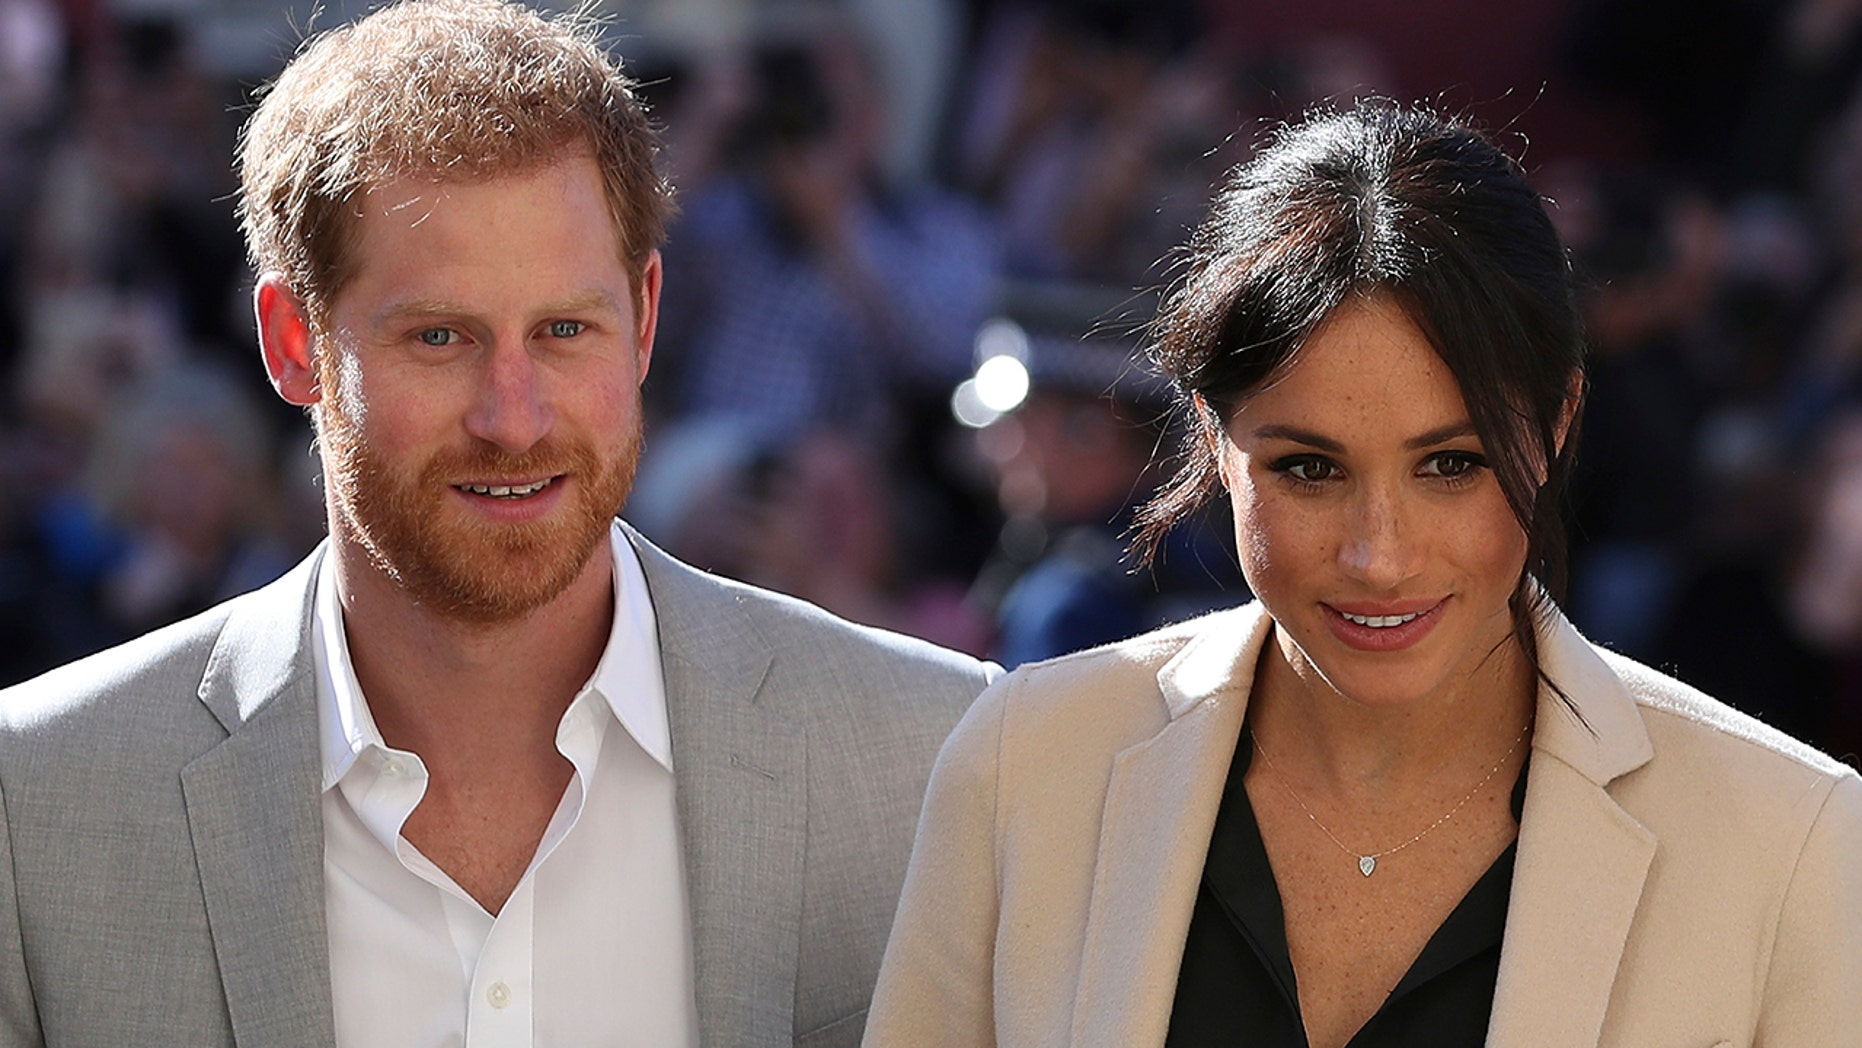 Meghan Markle and Prince Harry Are Making a Major Life Change